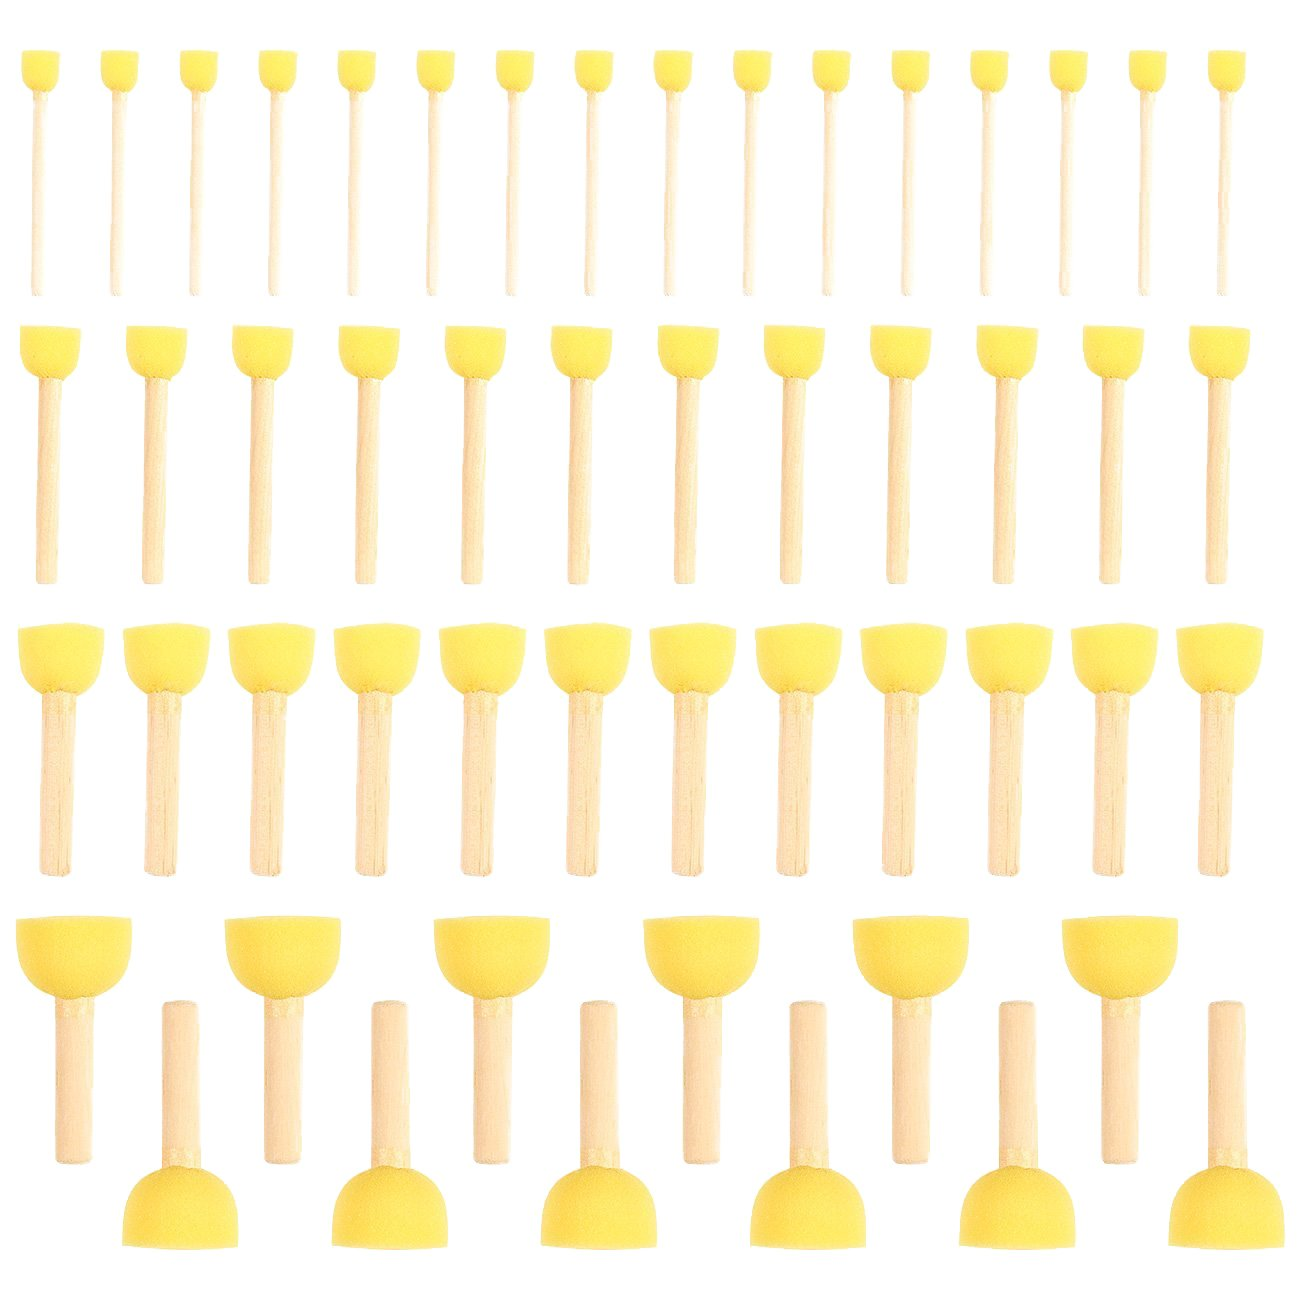 Foam Brushes - Foam Paint Brush Set - Round Paint Sponge with Wood Handle, Foam Brush, Stencil Brushes - Value Pack of 50-4 Different Sizes - Great for Kids Arts and Crafts, Stencils, Painting by Blue Panda